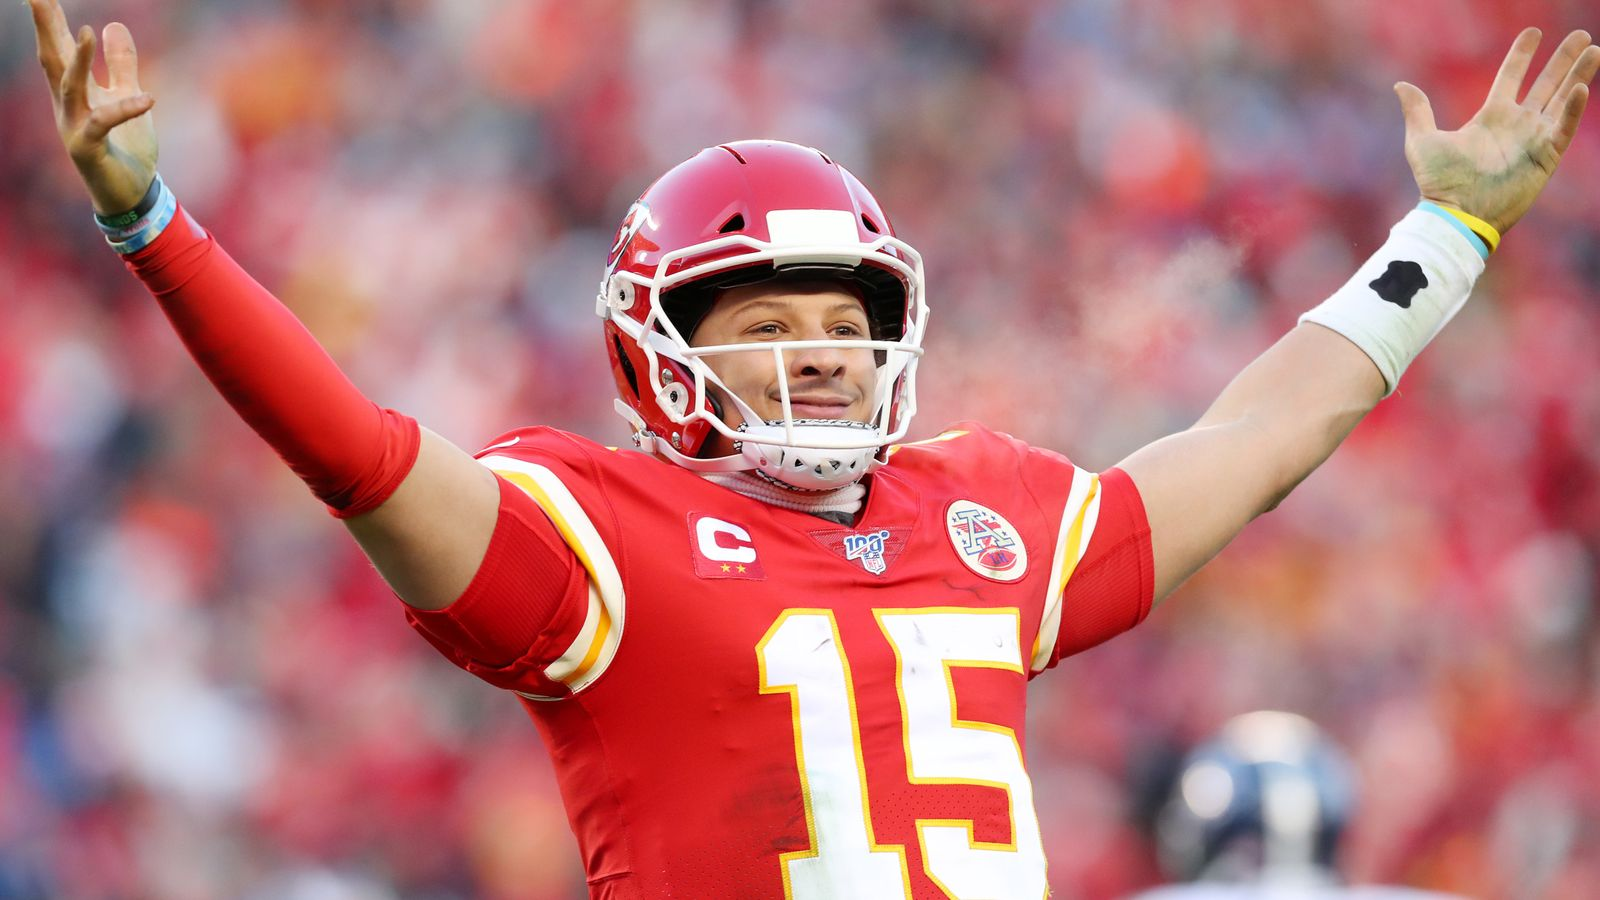 Tennessee Titans 24-35 Chiefs of Kansas City: Patrick Mahomes shines as the Chiefs reach the Super Bowl   NFL news